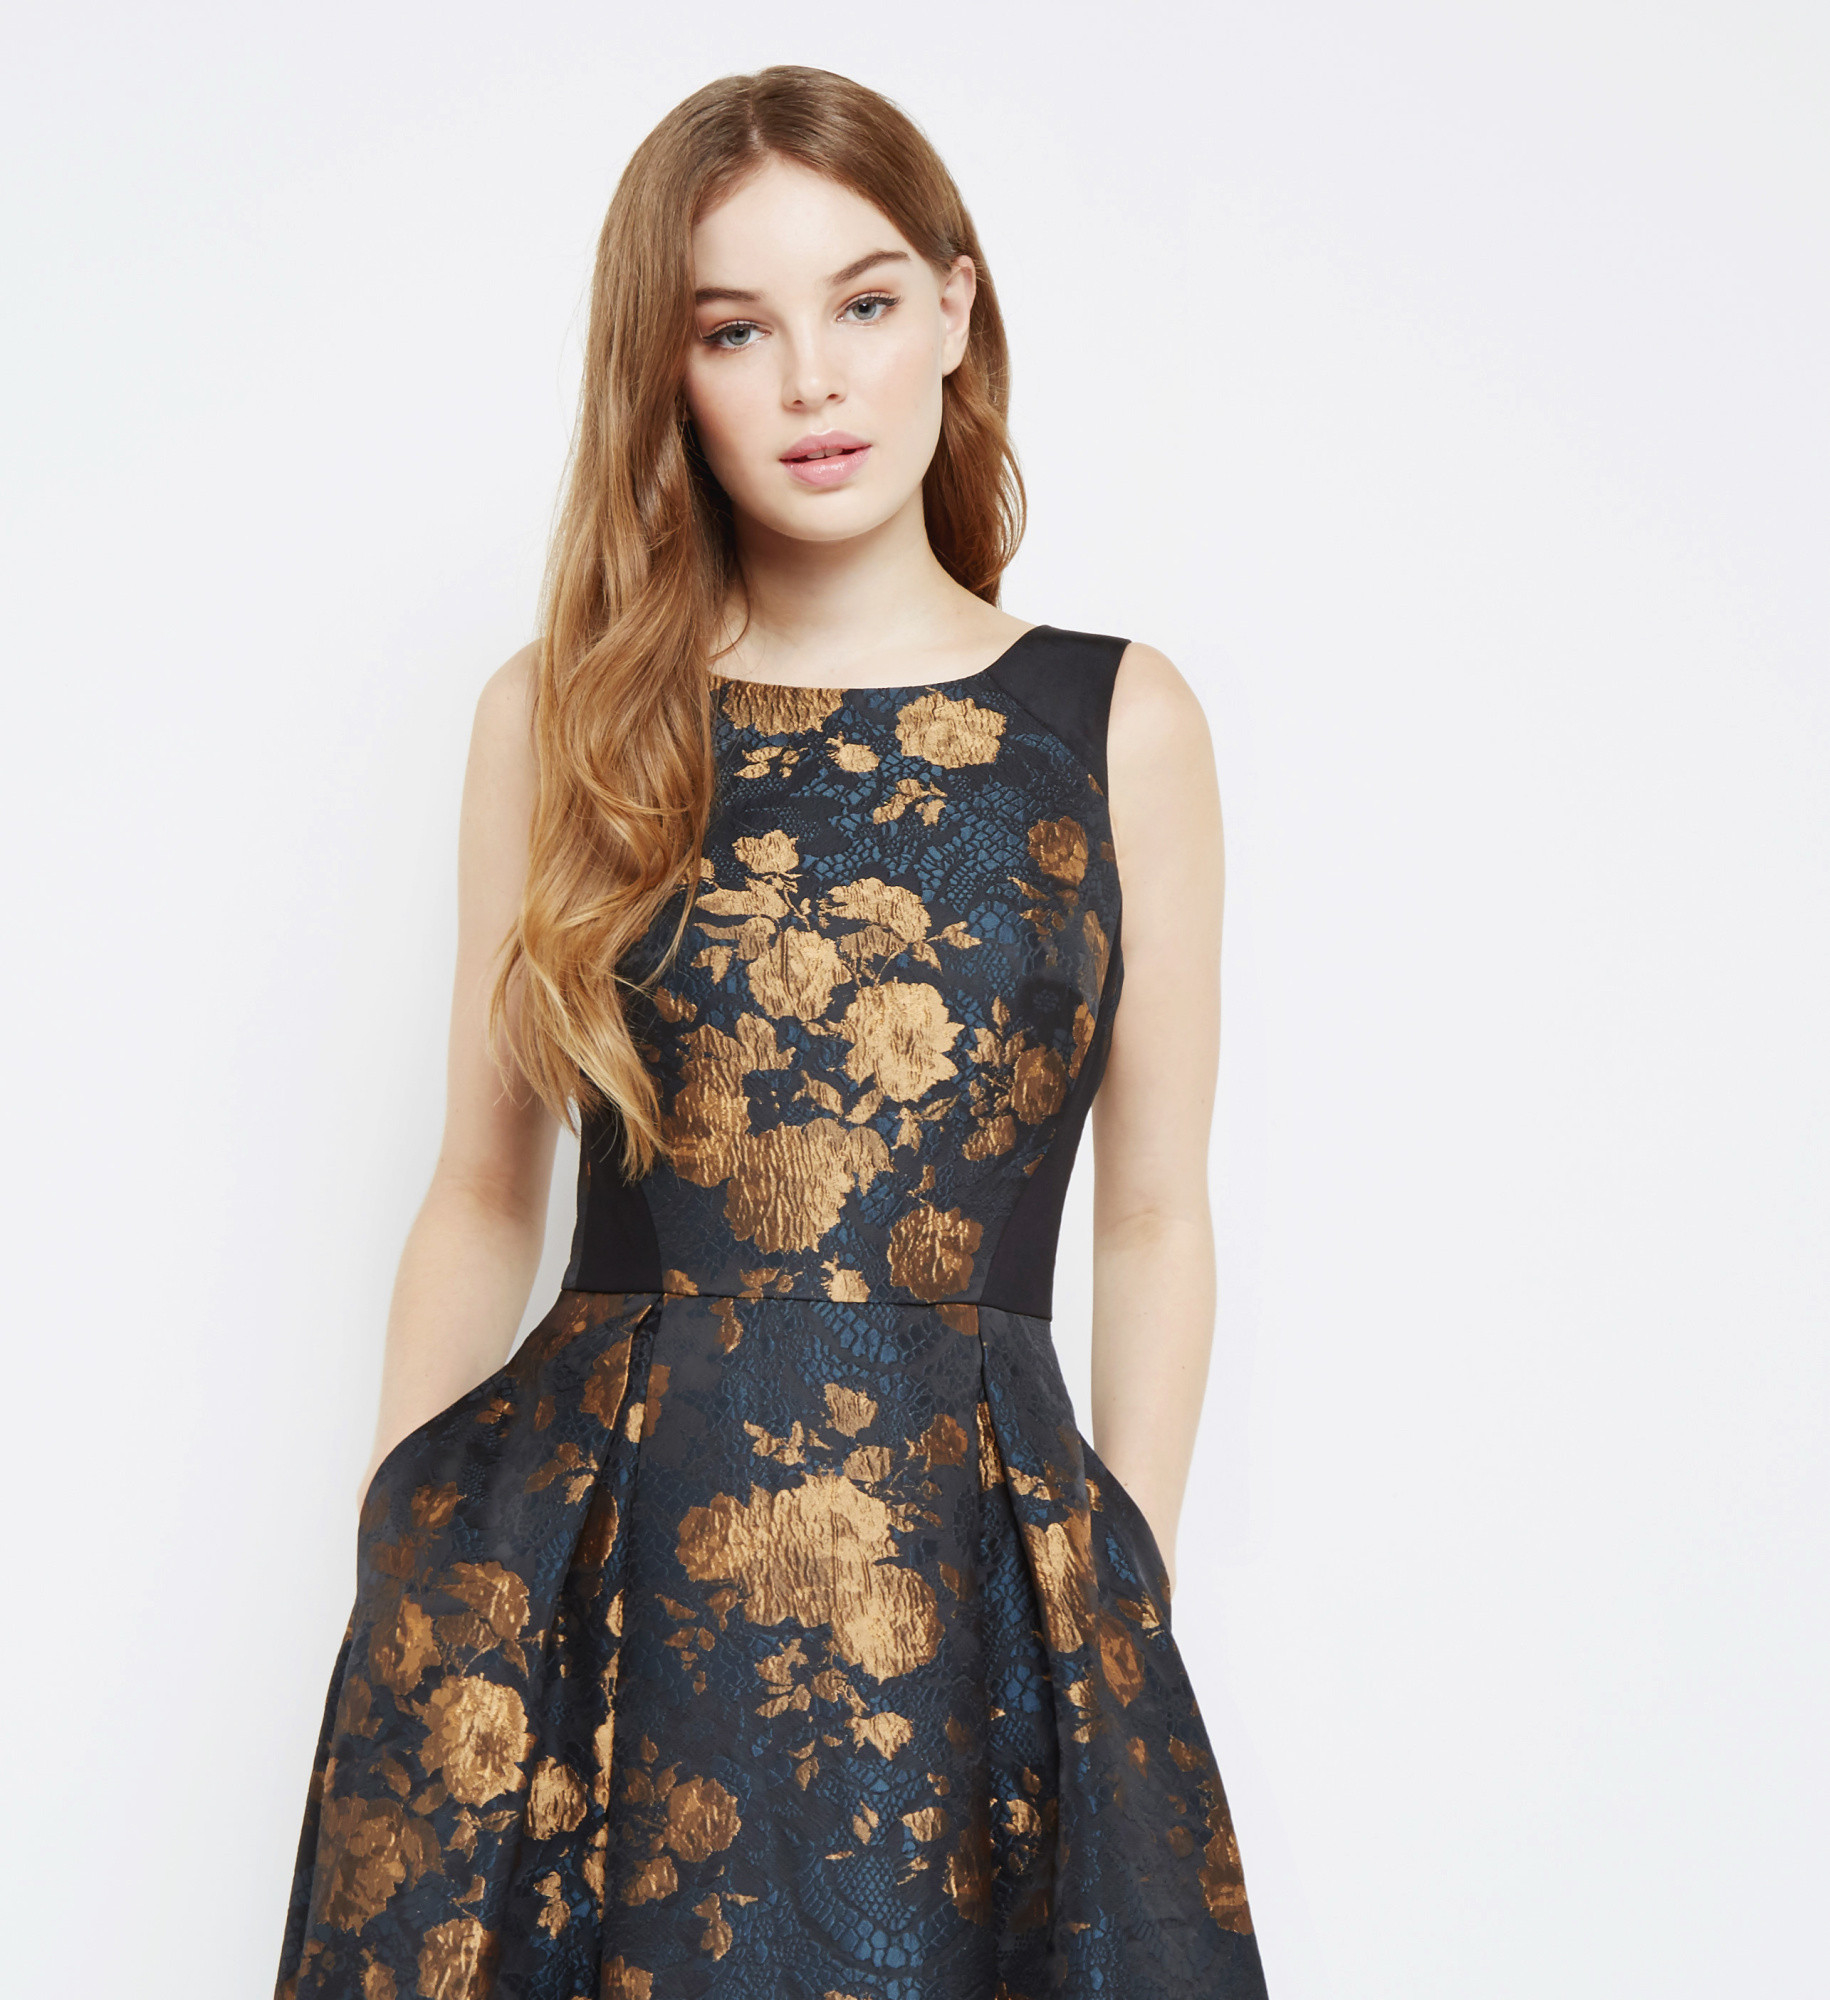 This season Ted Baker has upped their game in the style stakes, and the result is quite phenomenal. You'll discover trending dresses with all the accessories to match, plus all the latest suits tailored to a tee.